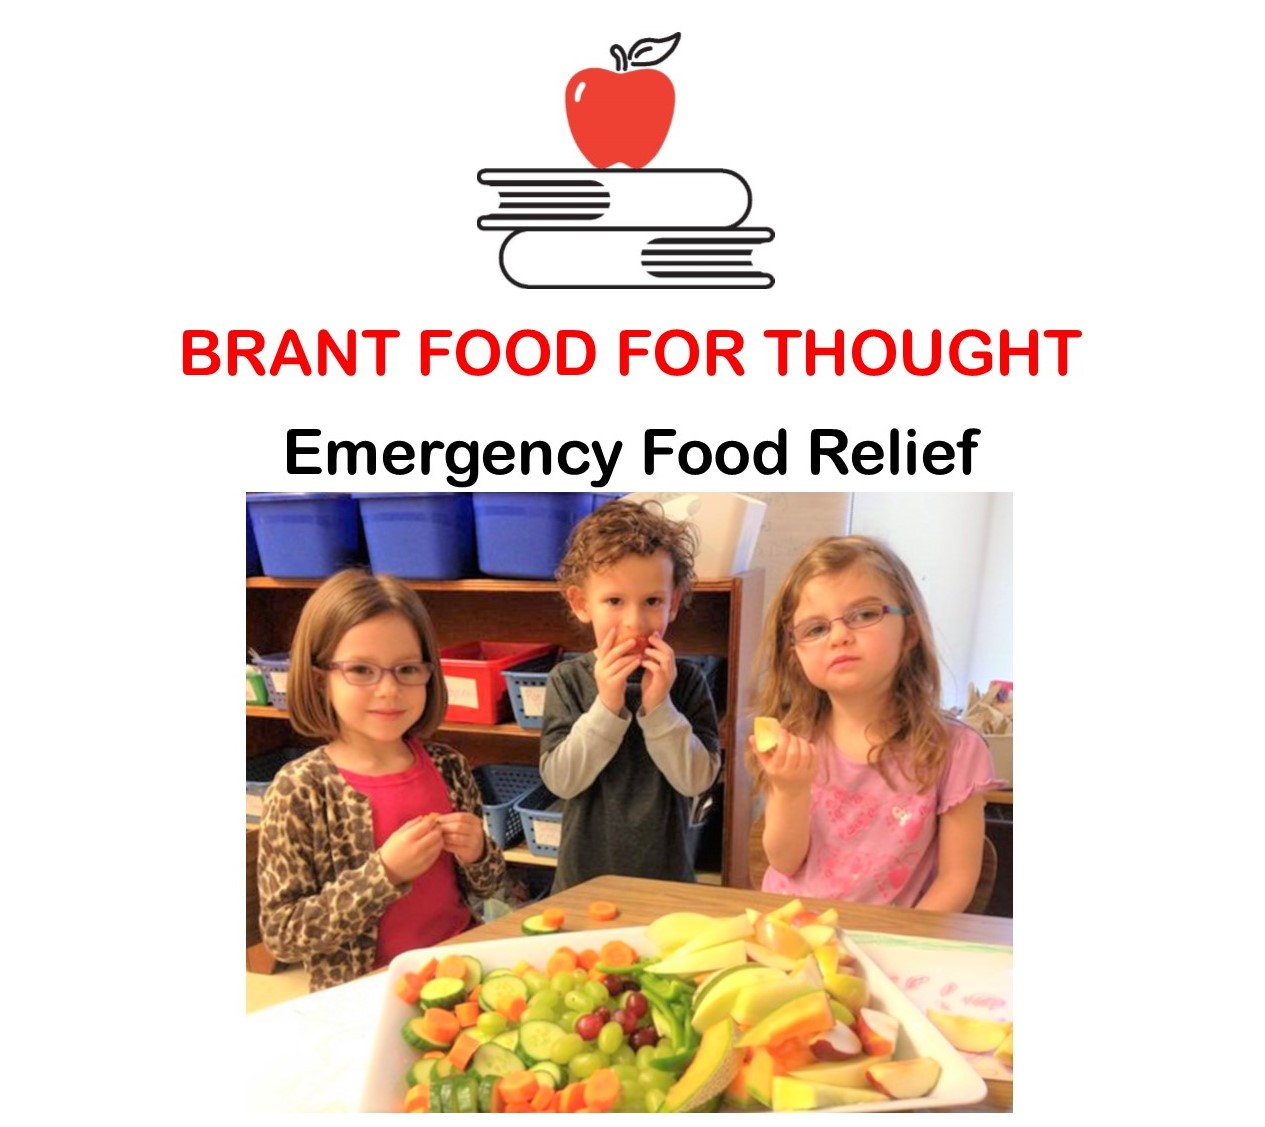 Launching Emergency Food Relief Plan To Support Students and Families